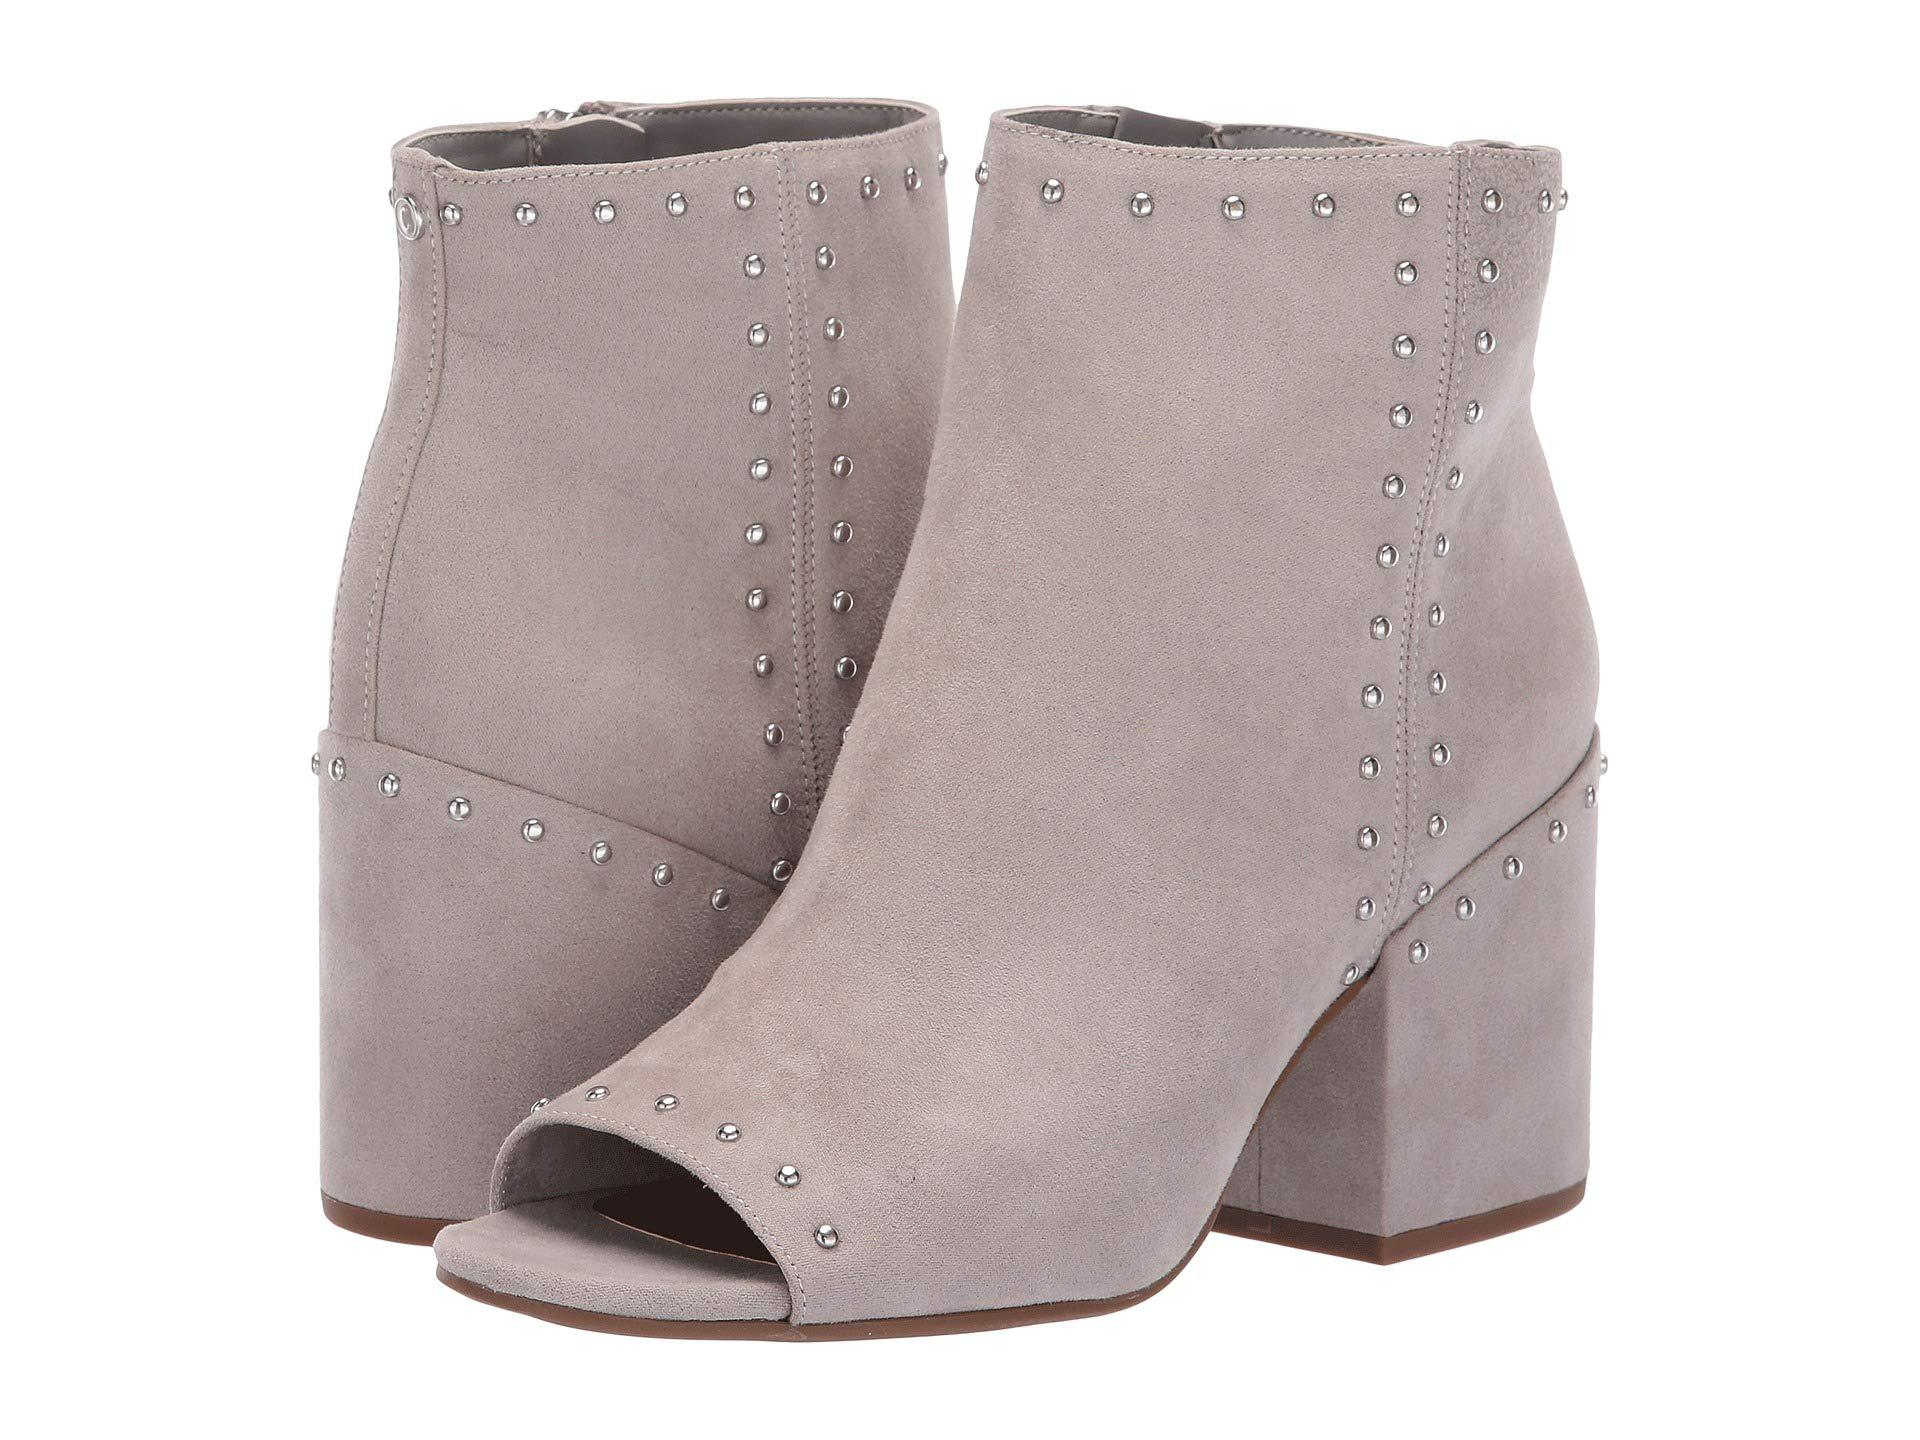 6276d852b6fd Lyst - Circus by Sam Edelman Kathi in Gray - Save 35%